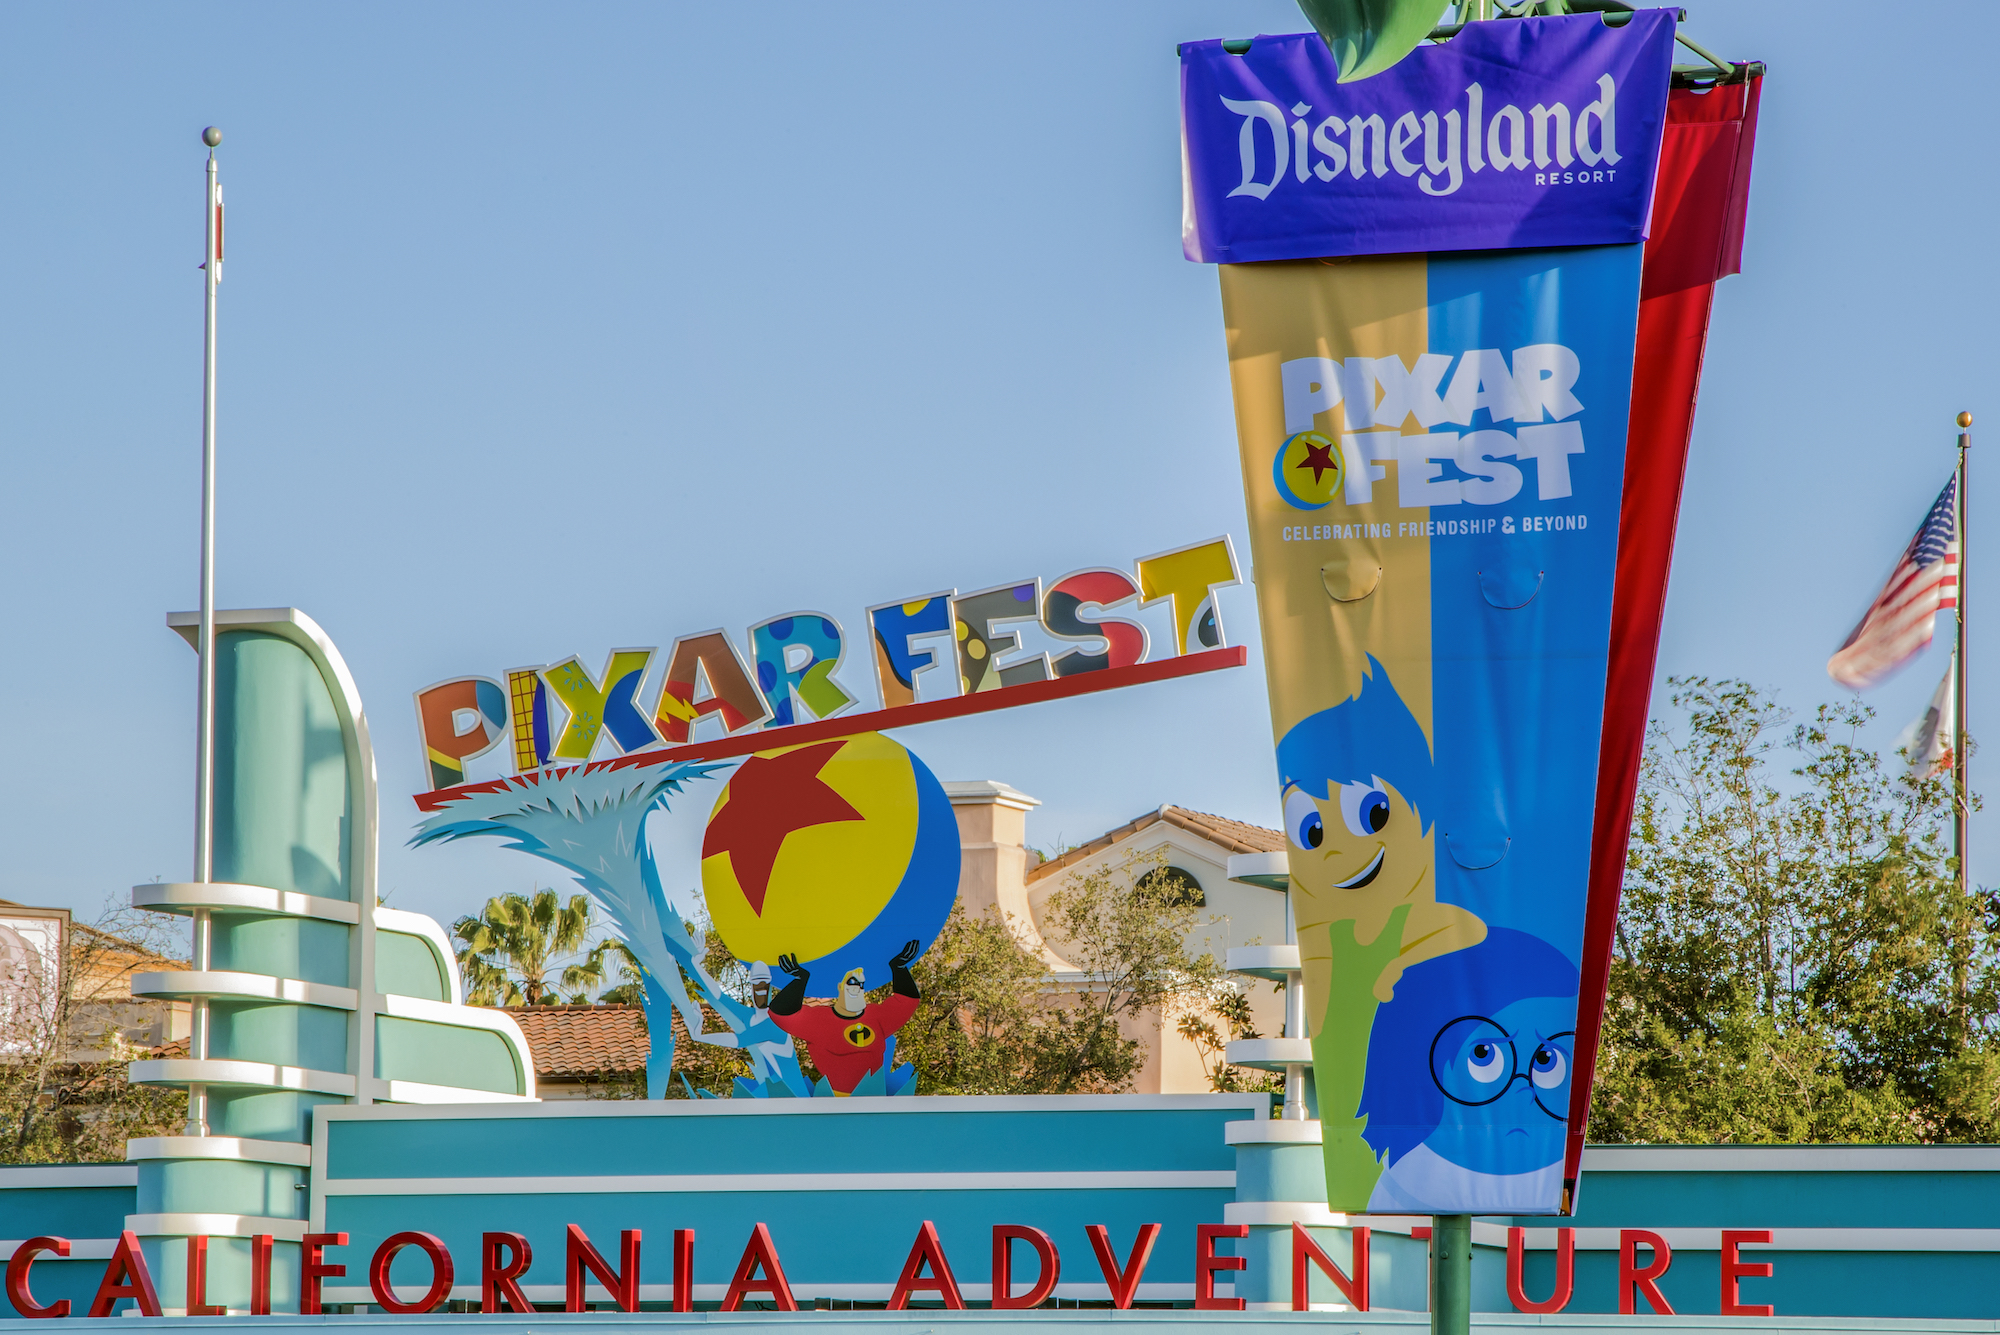 Pixar Fest in California